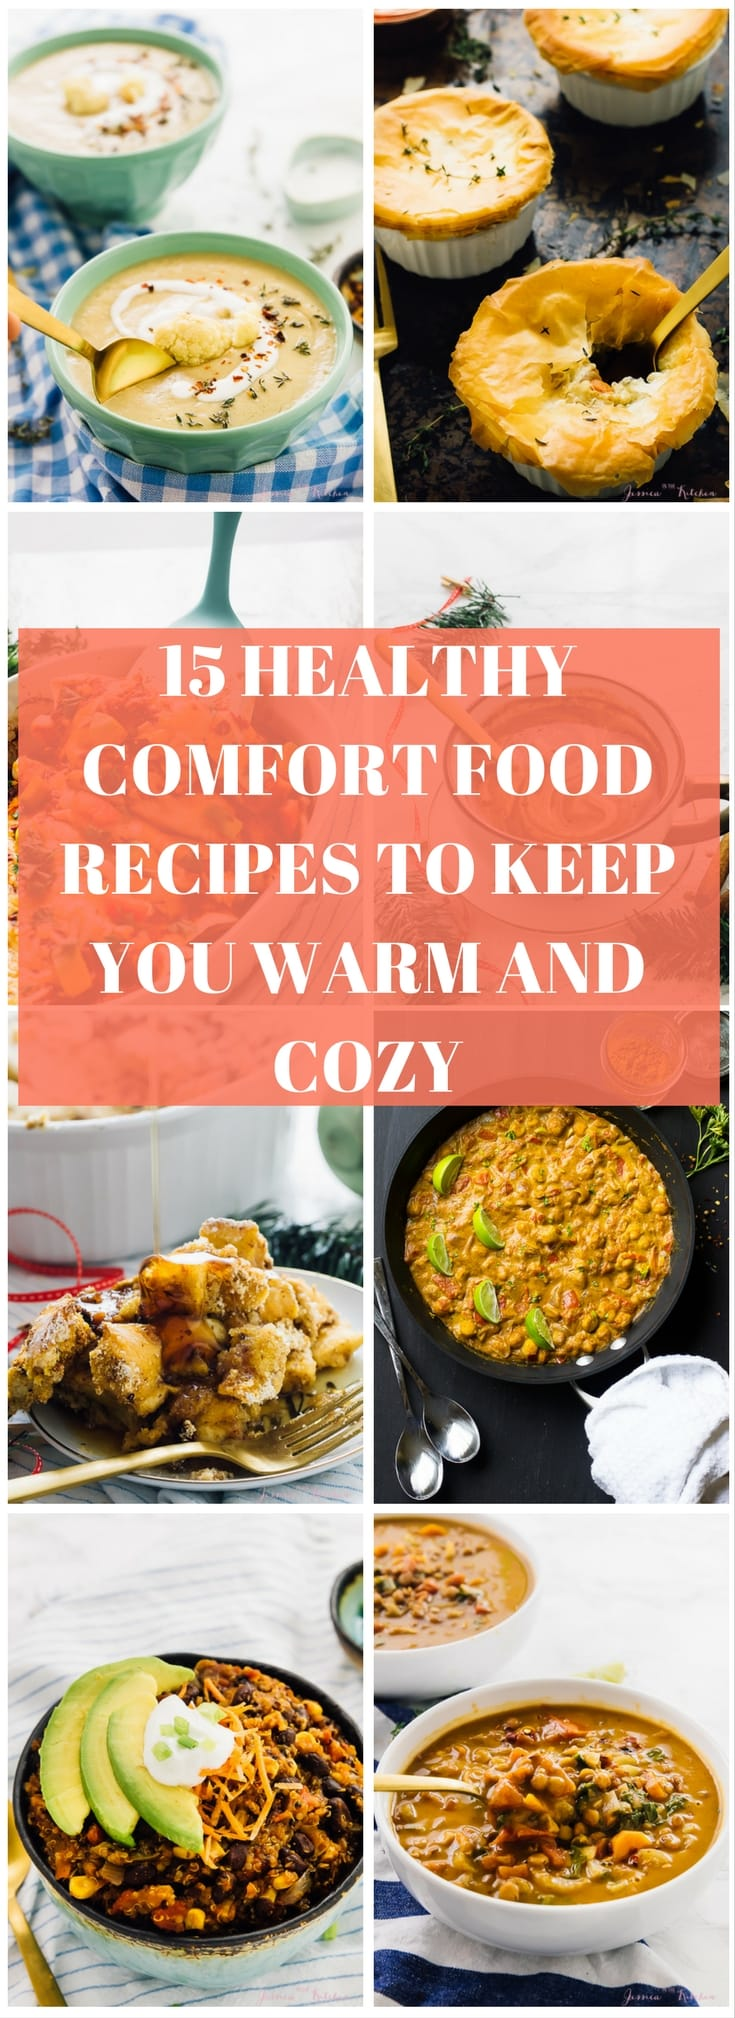 A montage of comfort food dishes with text over it.